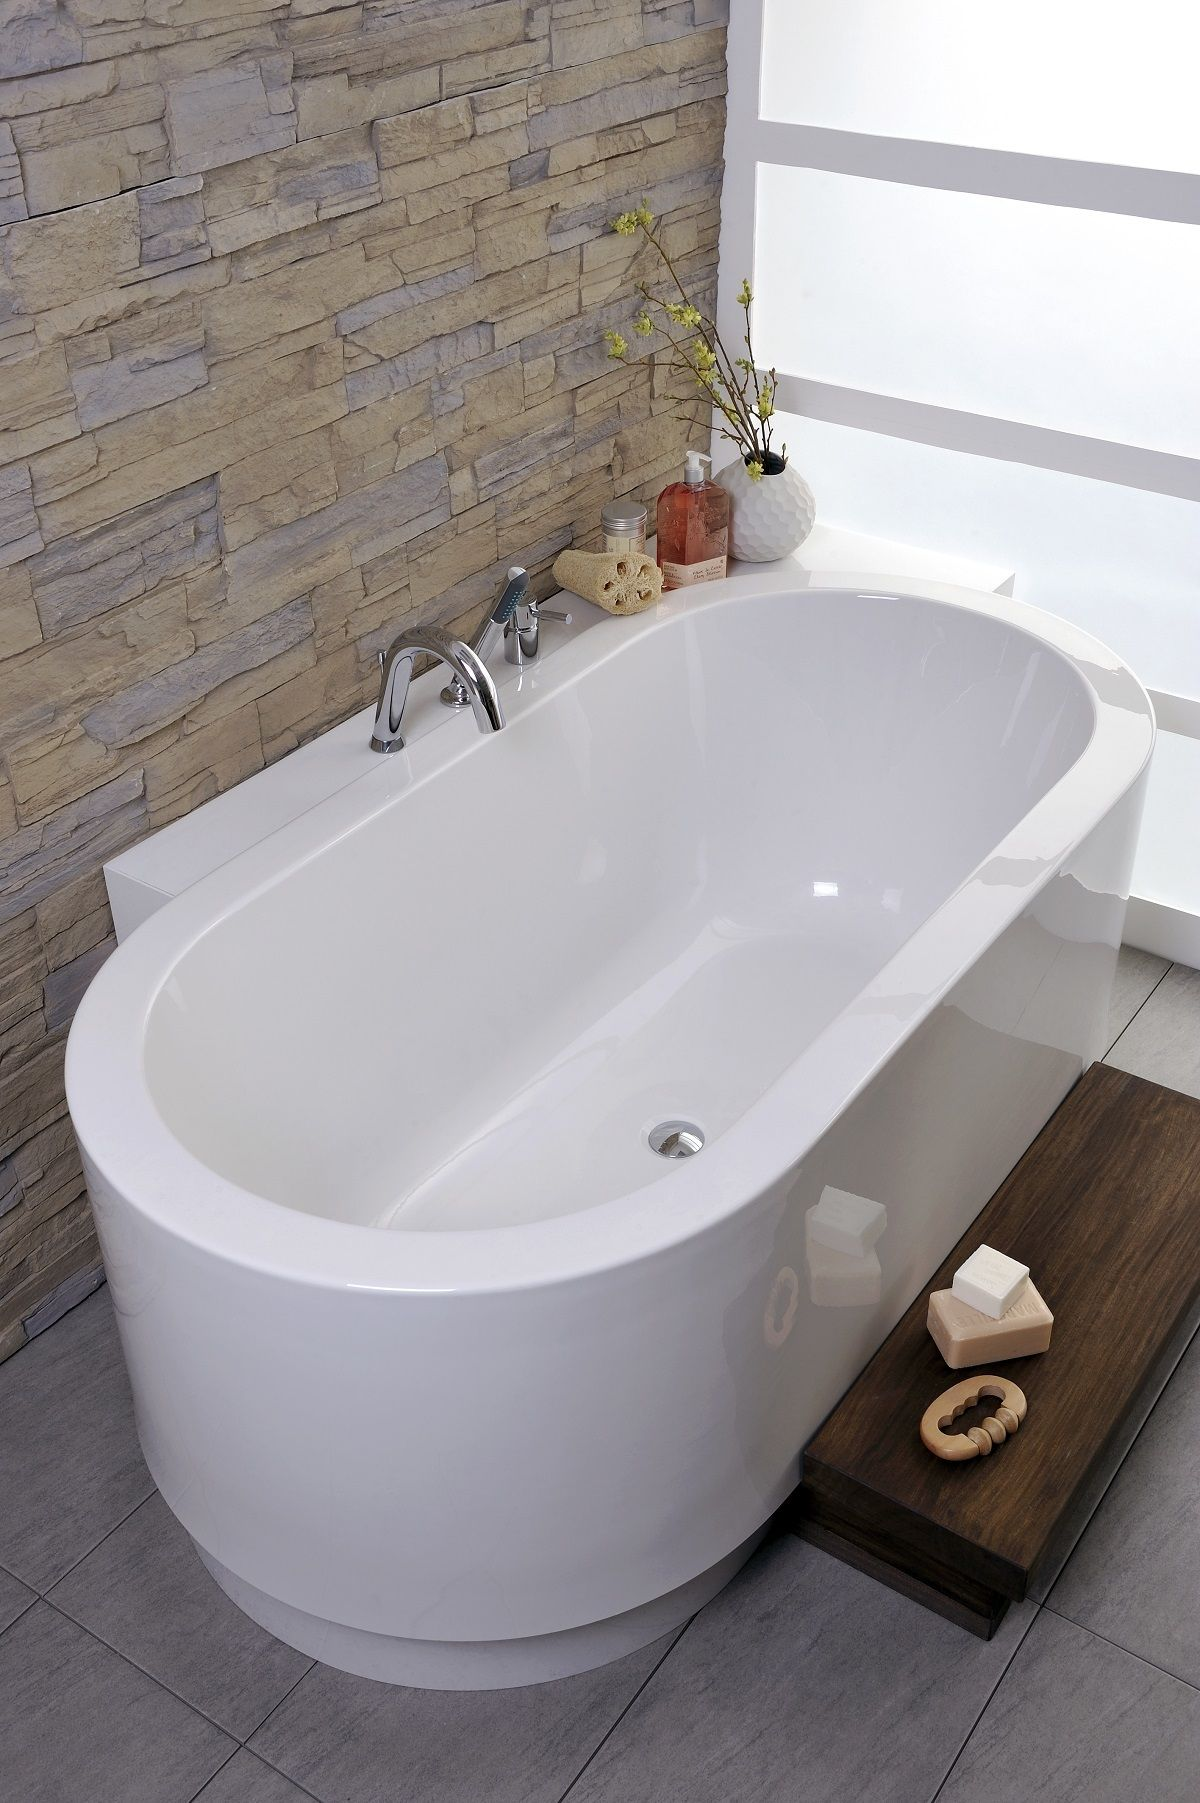 tub fillers for freestanding tubs. Faucets For Freestanding Tubs  new home inspiration Pinterest